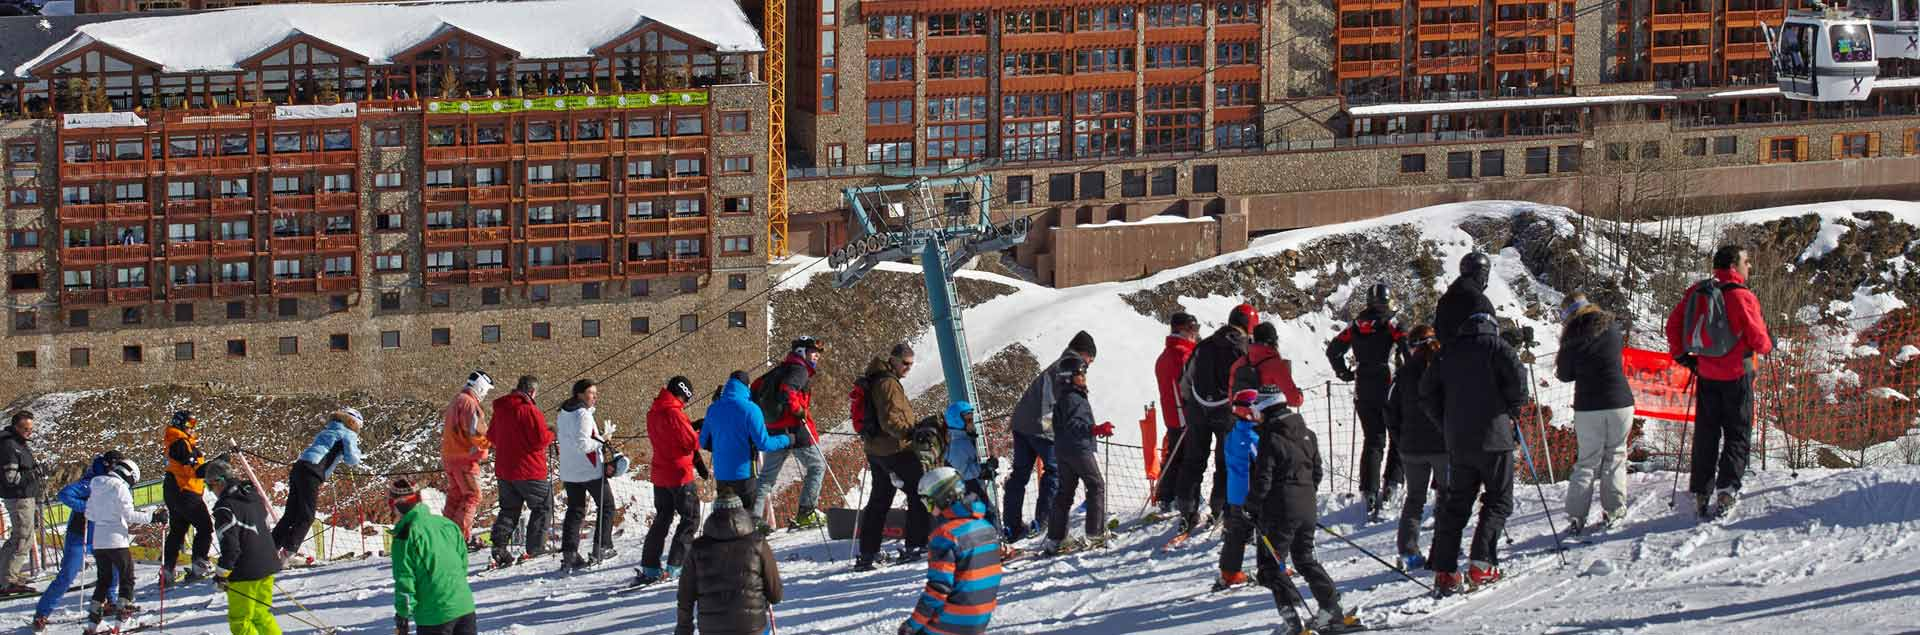 reservar classes de esquí en grandvalira